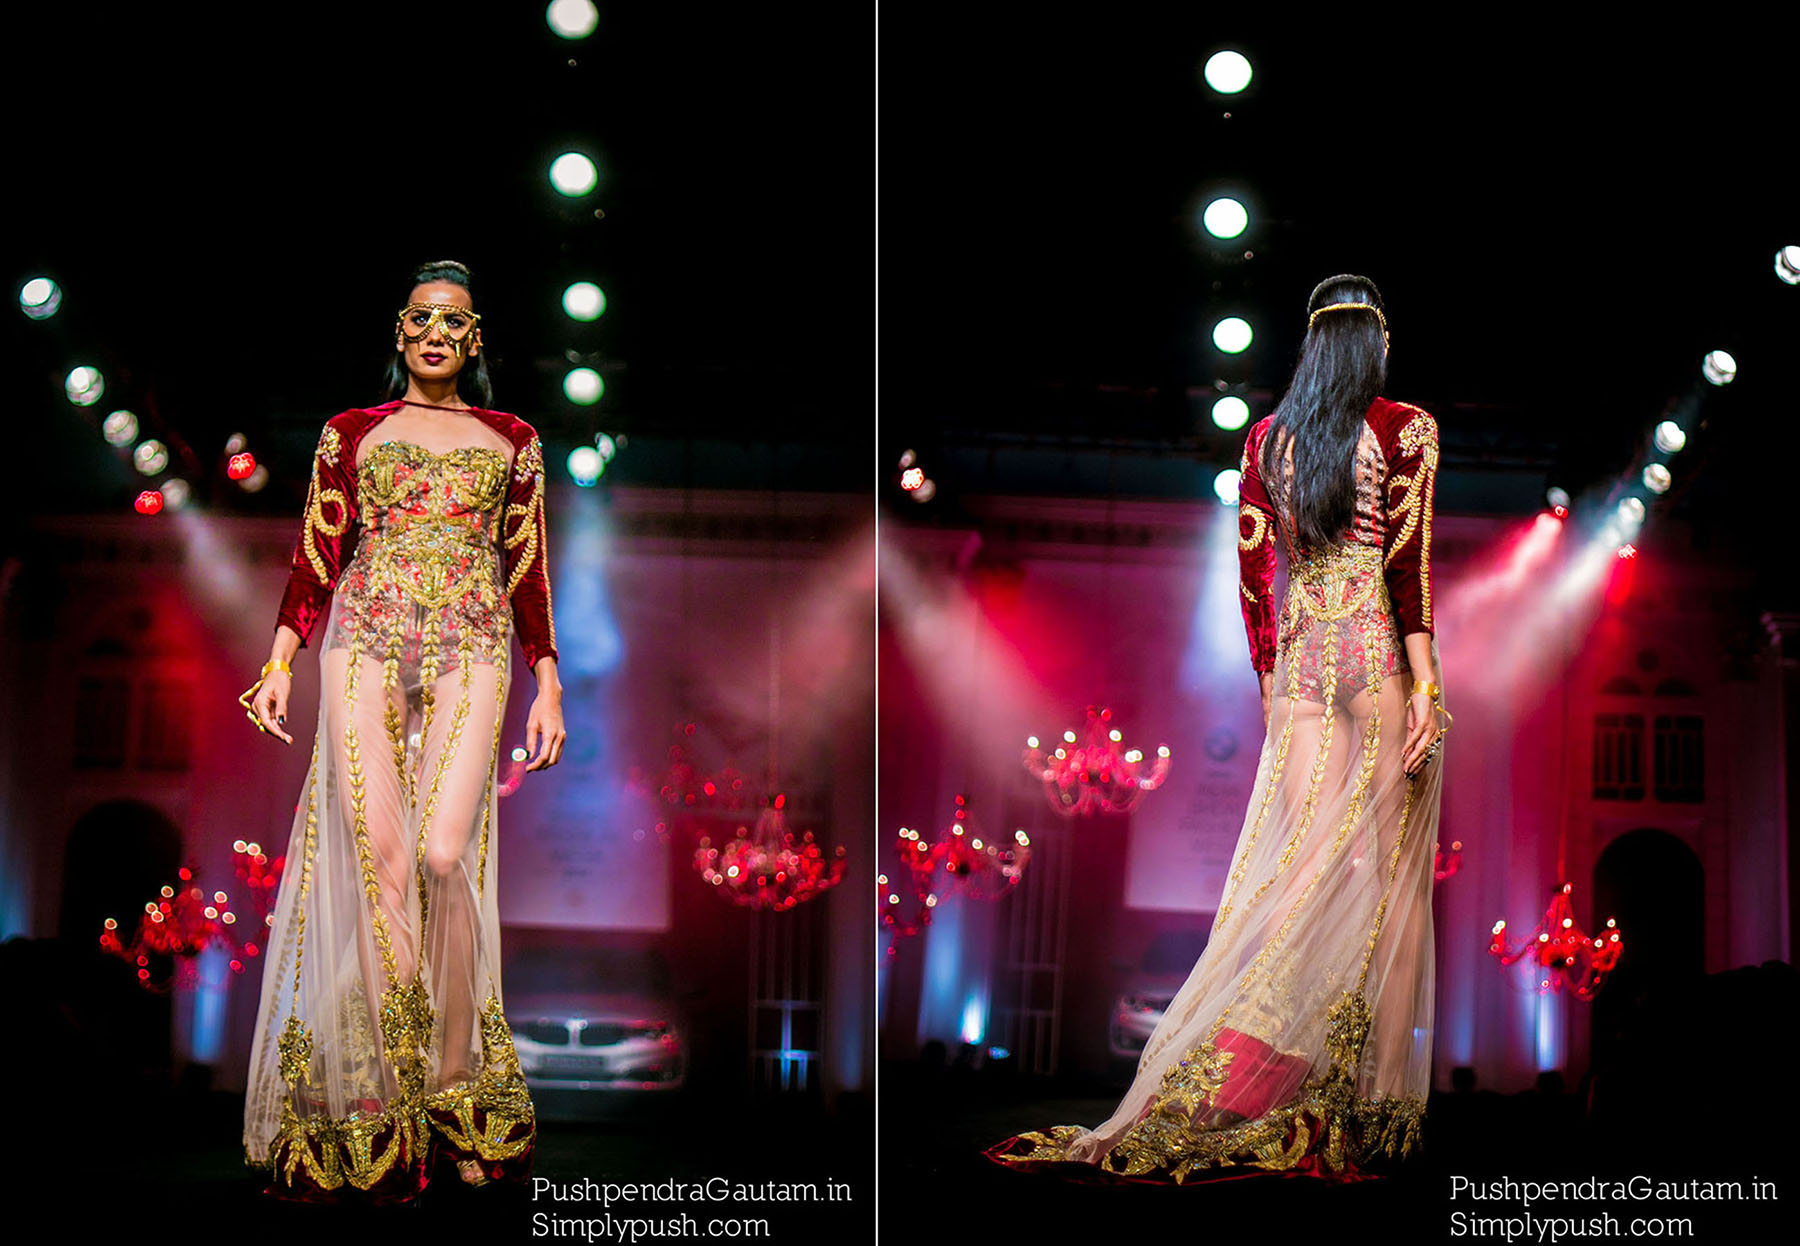 Falguni-shane-peacock-collection-pics-bridal-fashion-week-delhi-by-india-best-event-travel-lifestyle-photographer-pushpendra-gautam